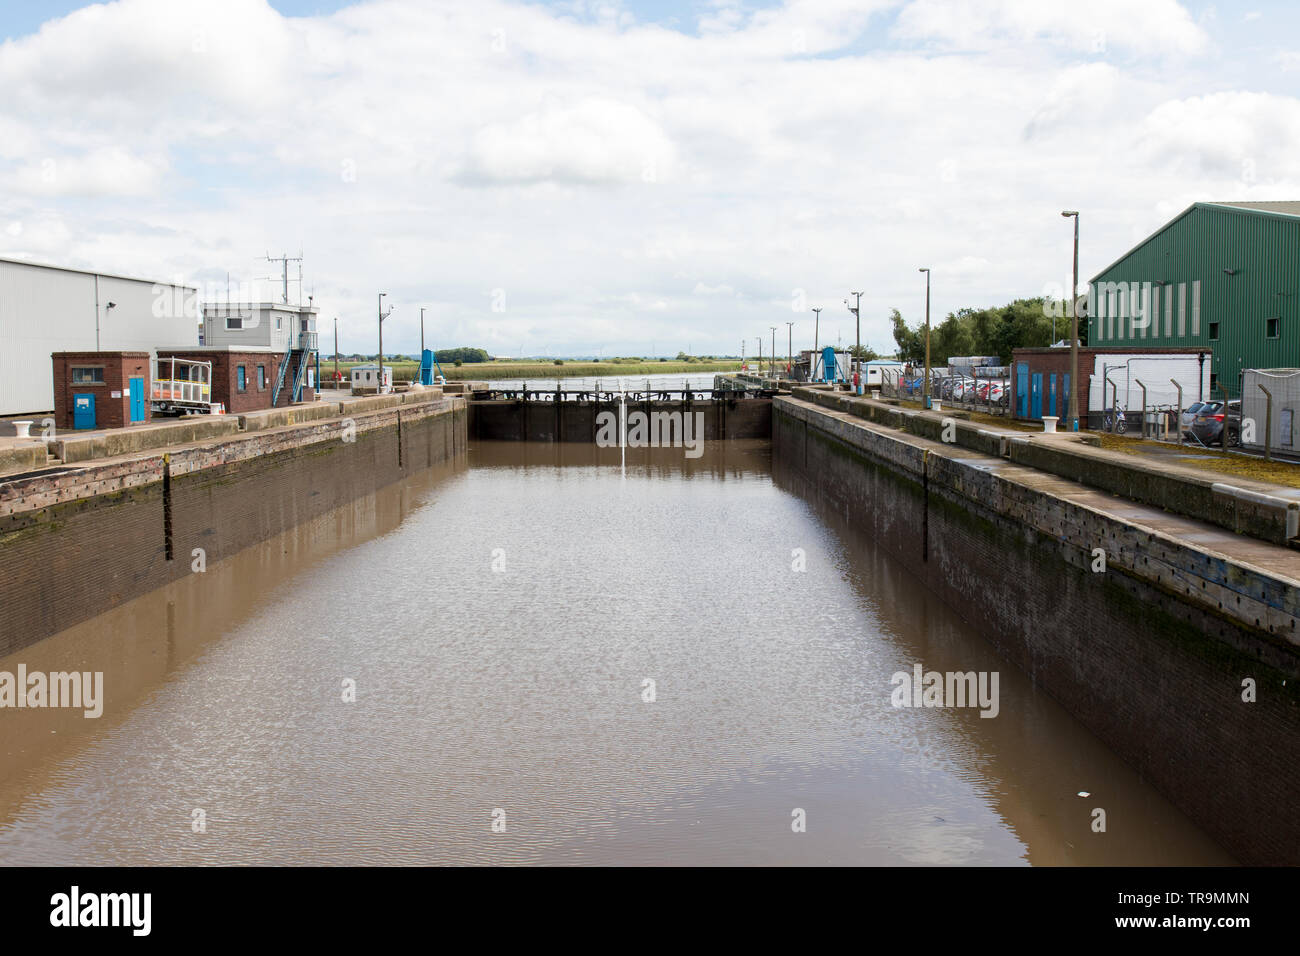 Goole, inland port, in May 2019 - Stock Image